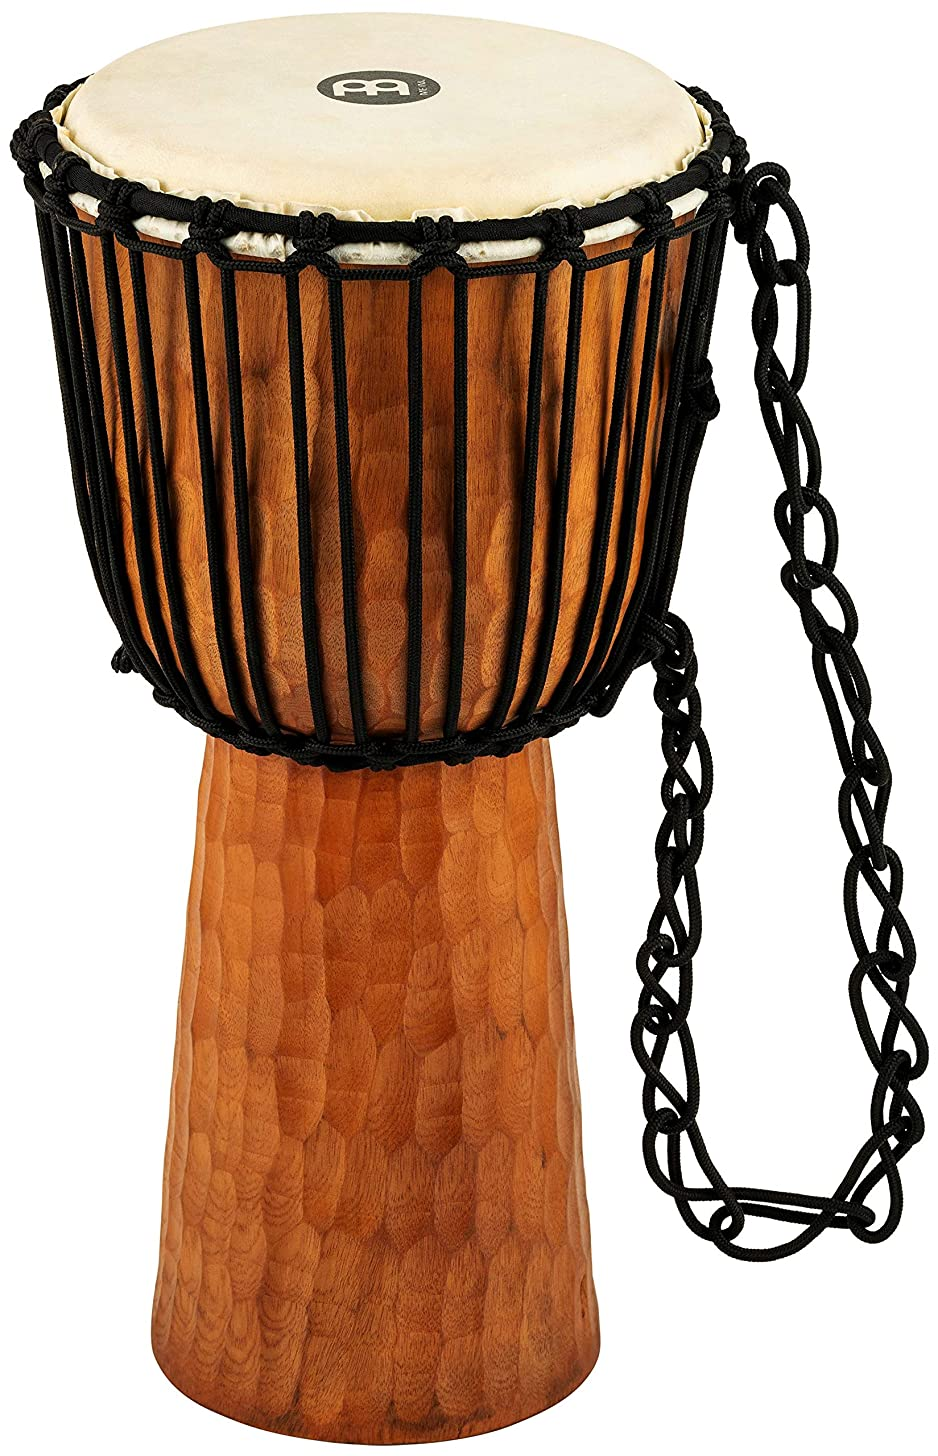 Meinl Djembe with Mahogany Wood - NOT MADE IN CHINA - 10